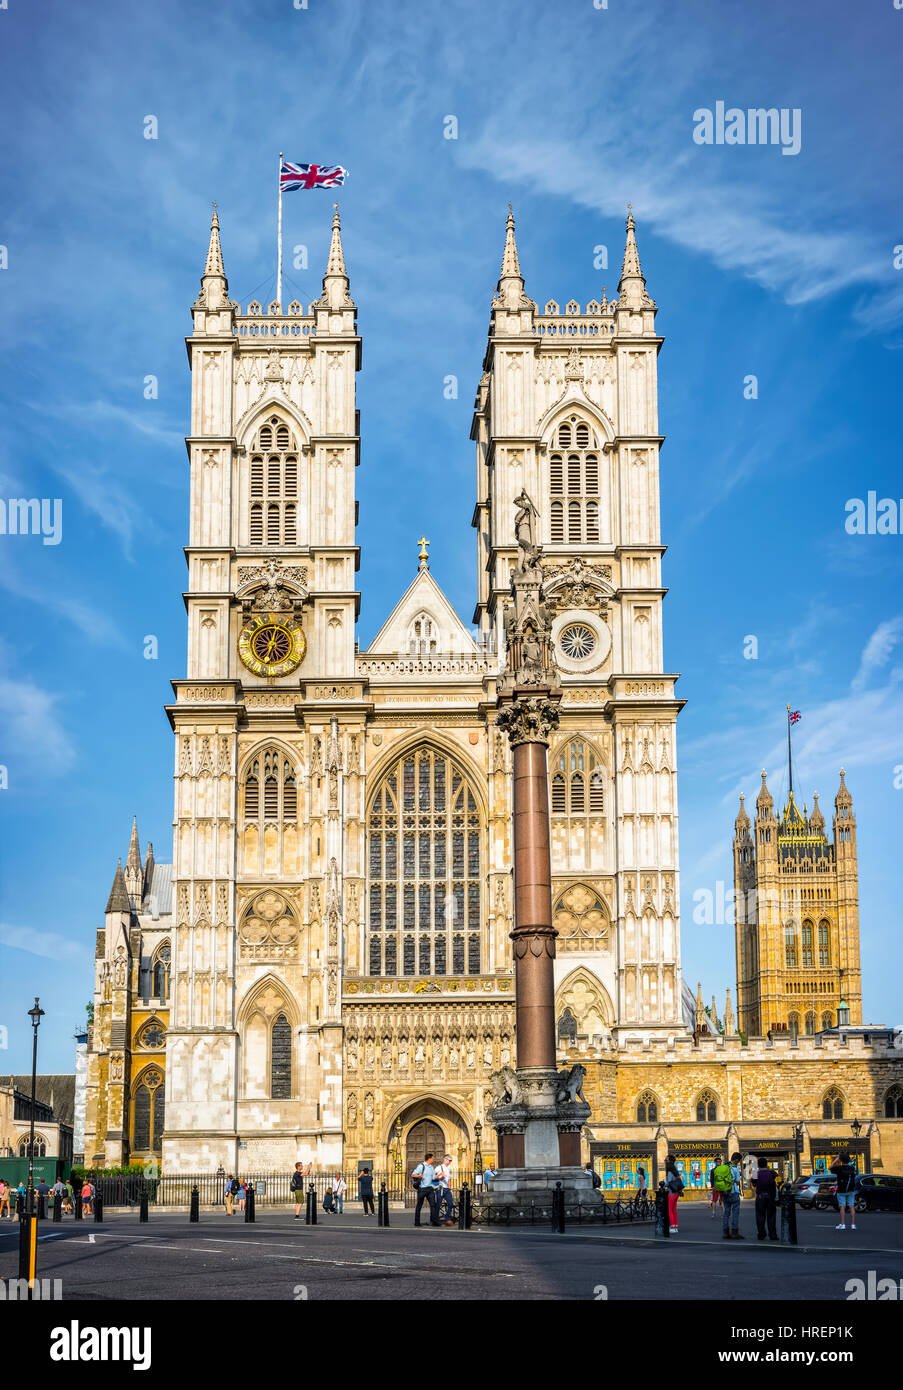 London, United Kingdom - July 3rd, 2015: Westminster Abbey founded in the 7th century is one of the most notable - Stock Image